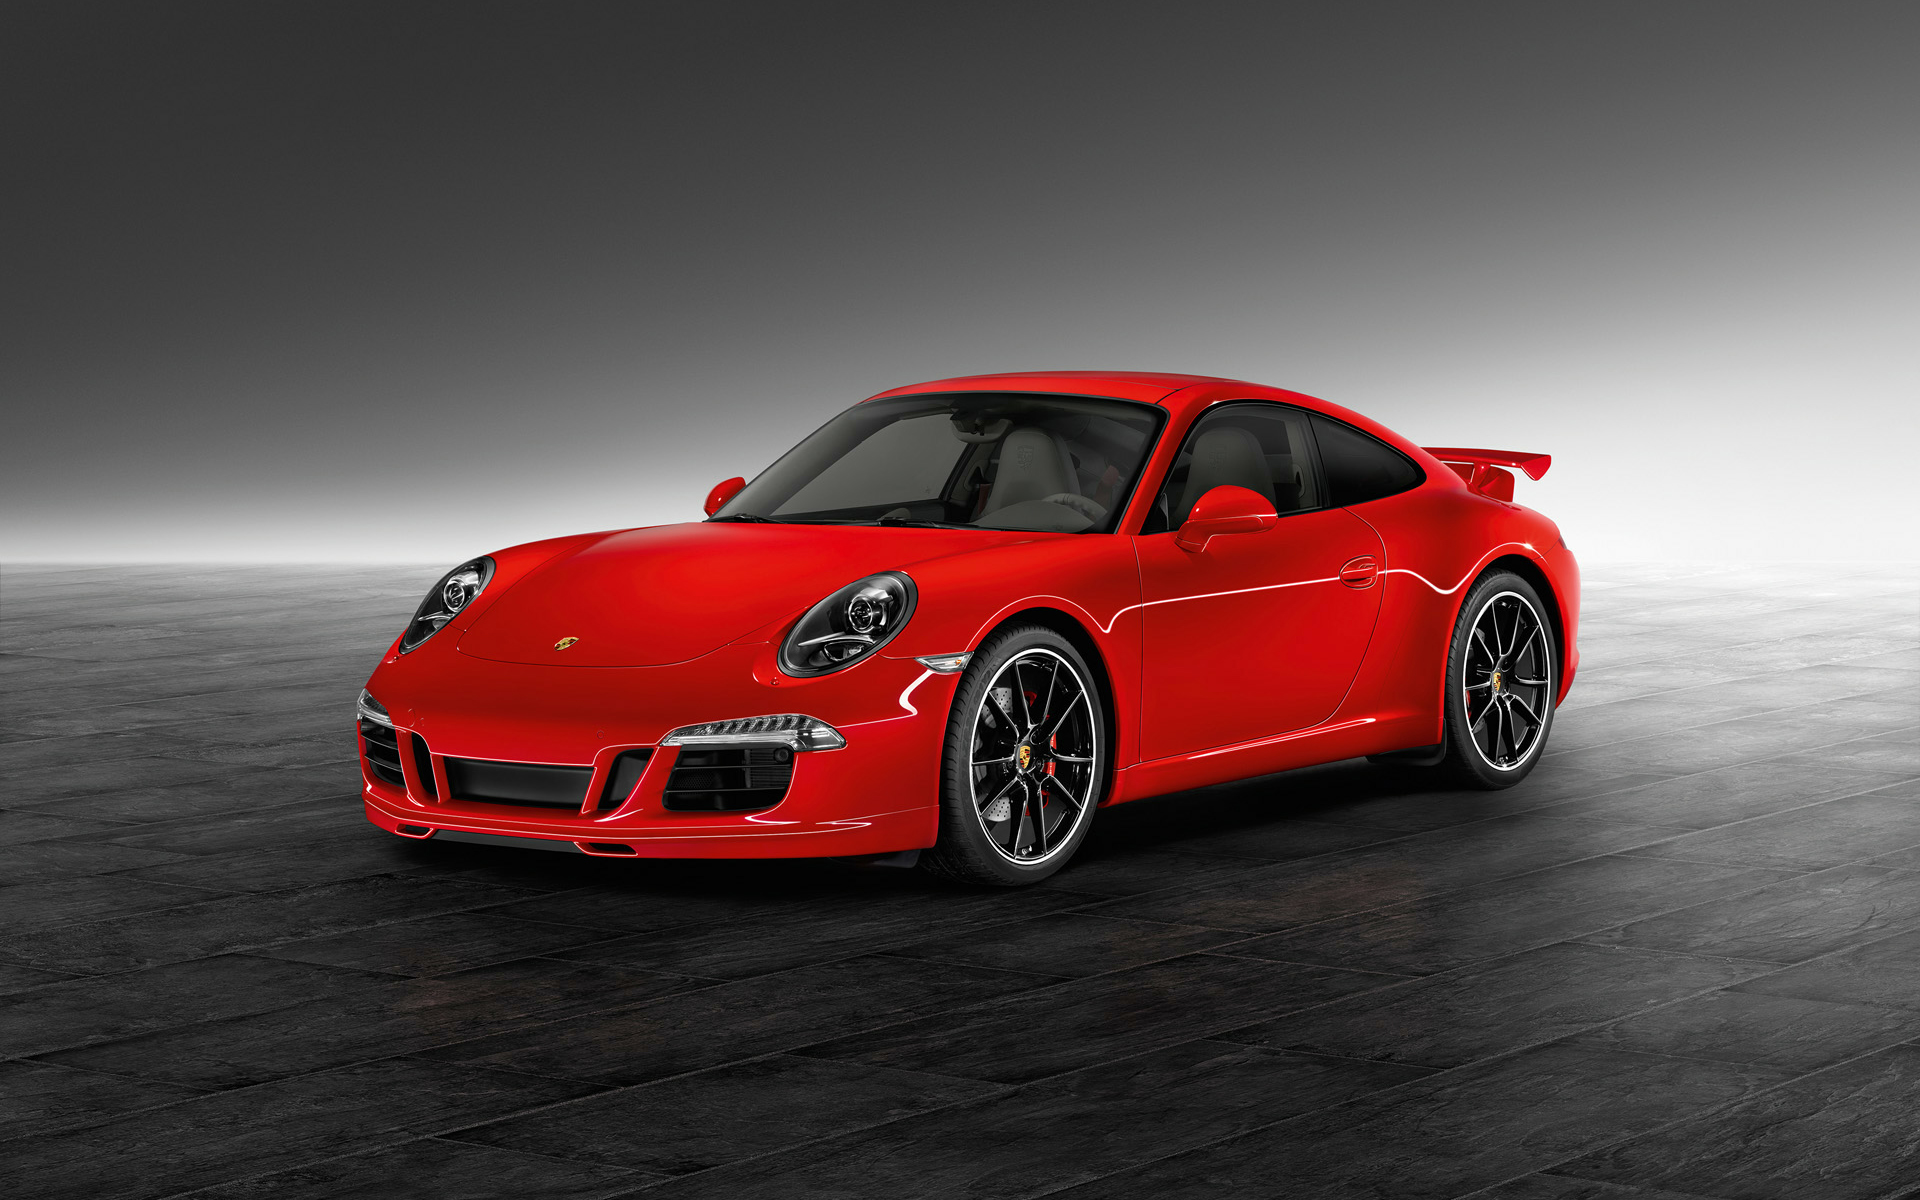 2012 Porsche 911 Carrera S Personalization Products Wallpaper Now 1920x1200